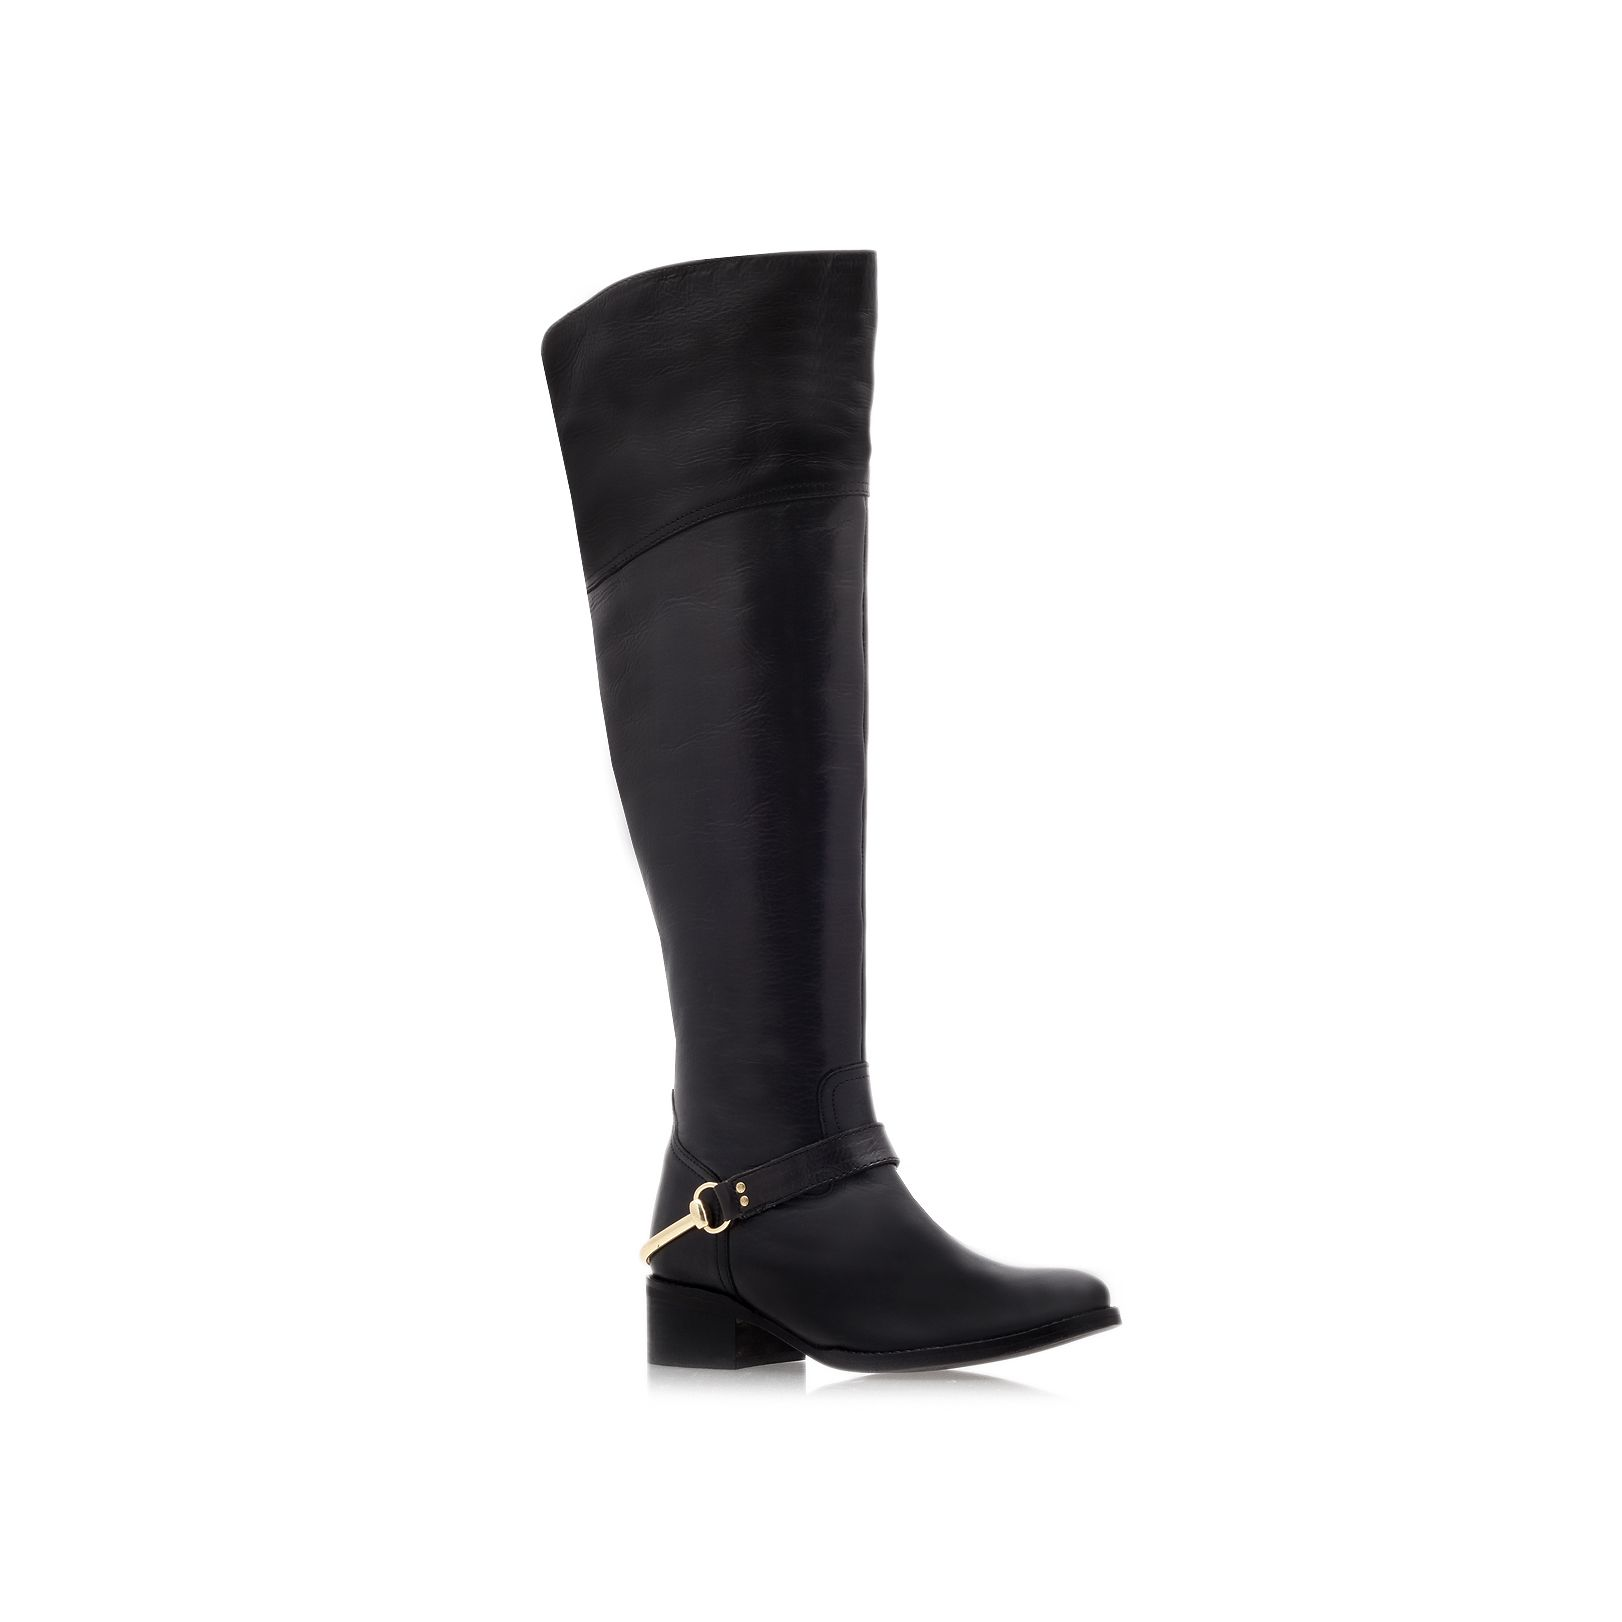 Water low heel riding boots